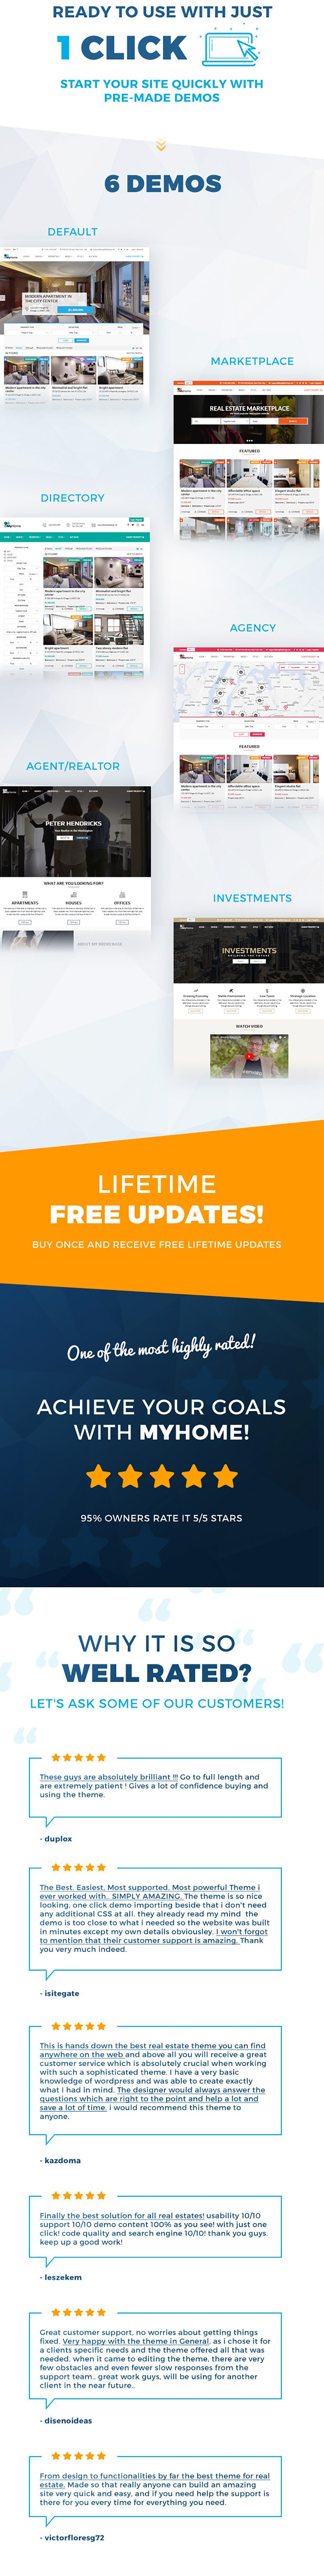 MyHome Real Estate WordPress - 4